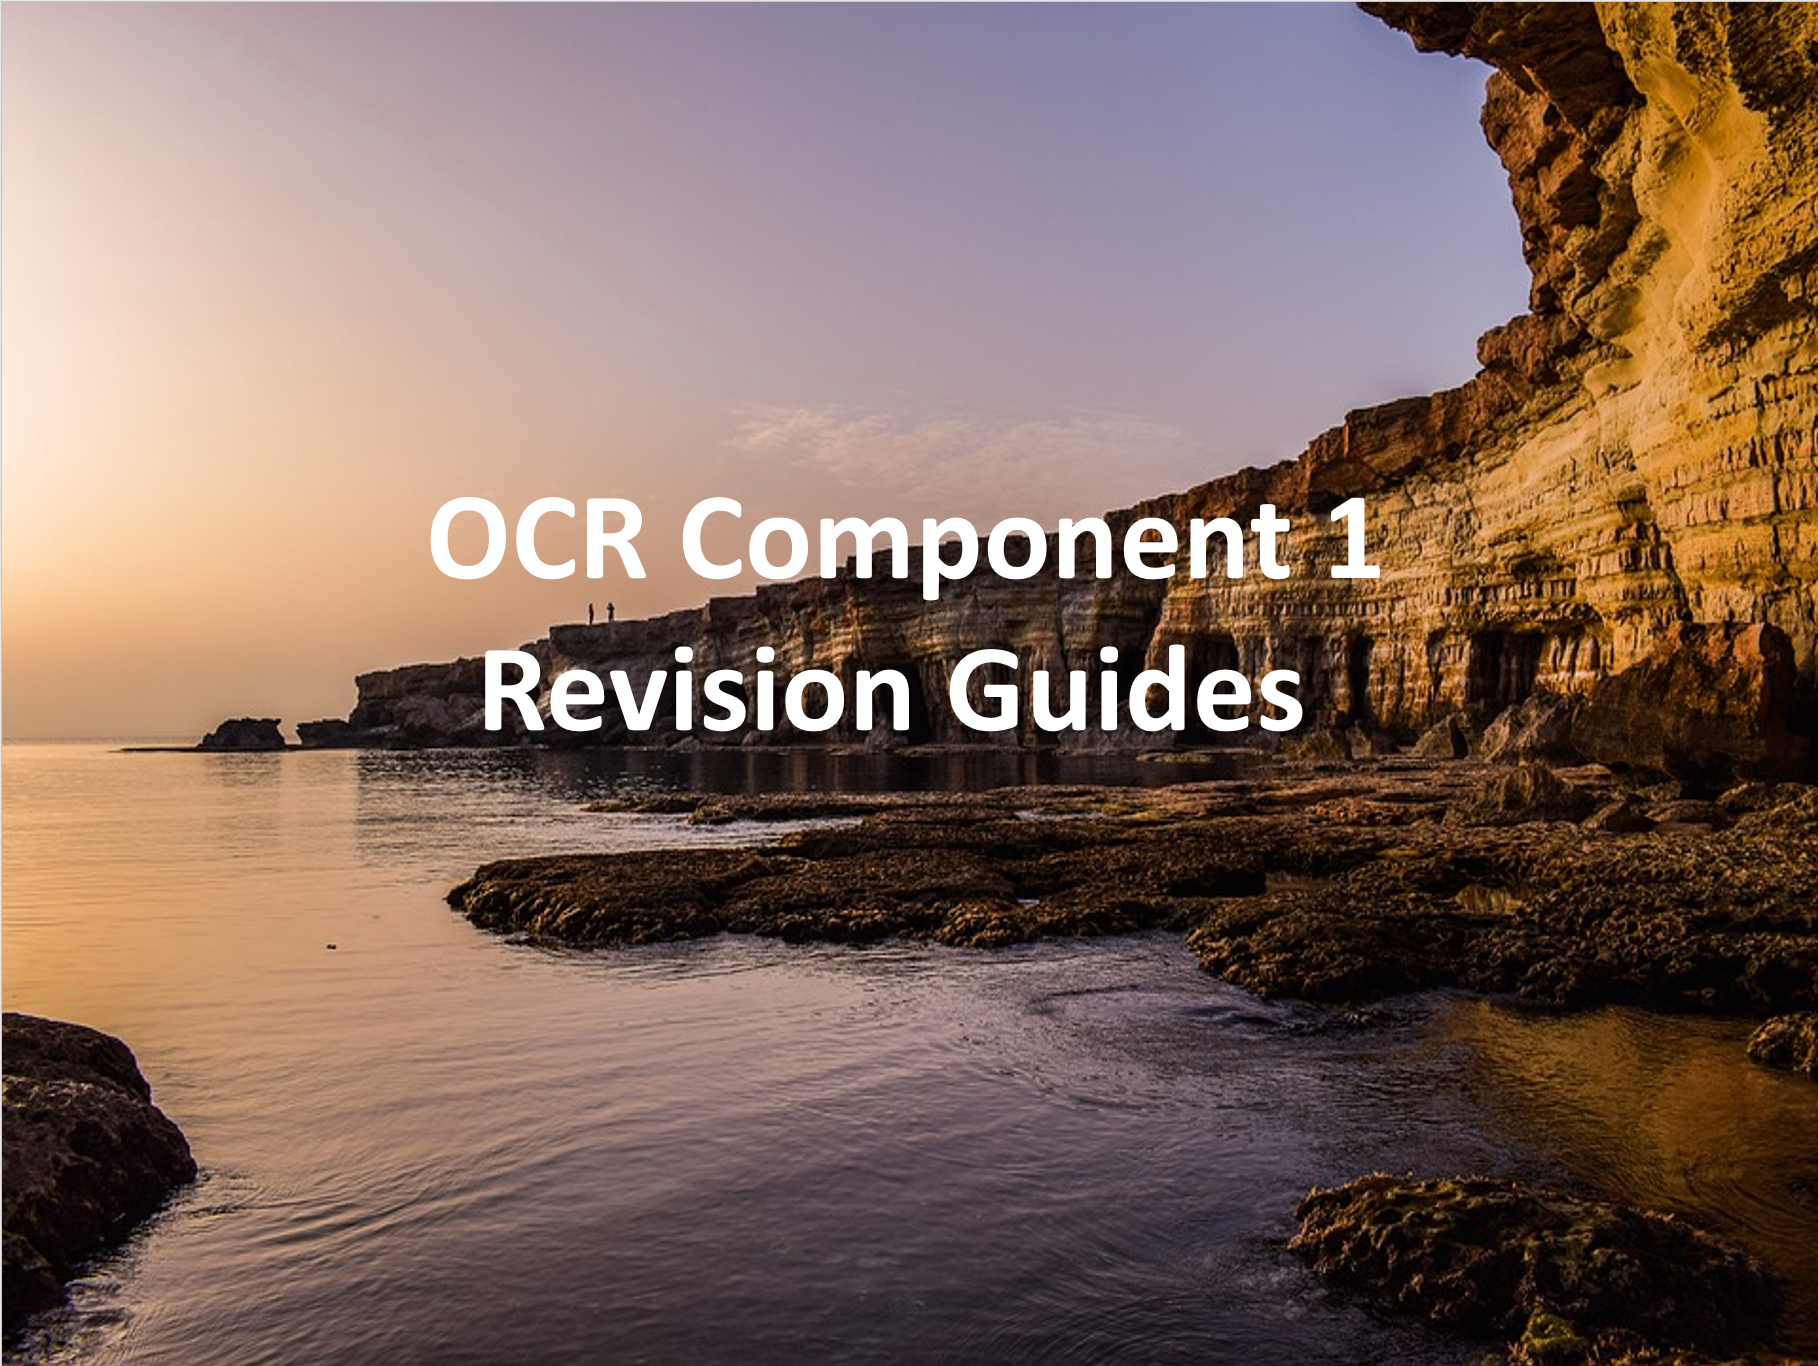 OCR Component 1 Revision Guides